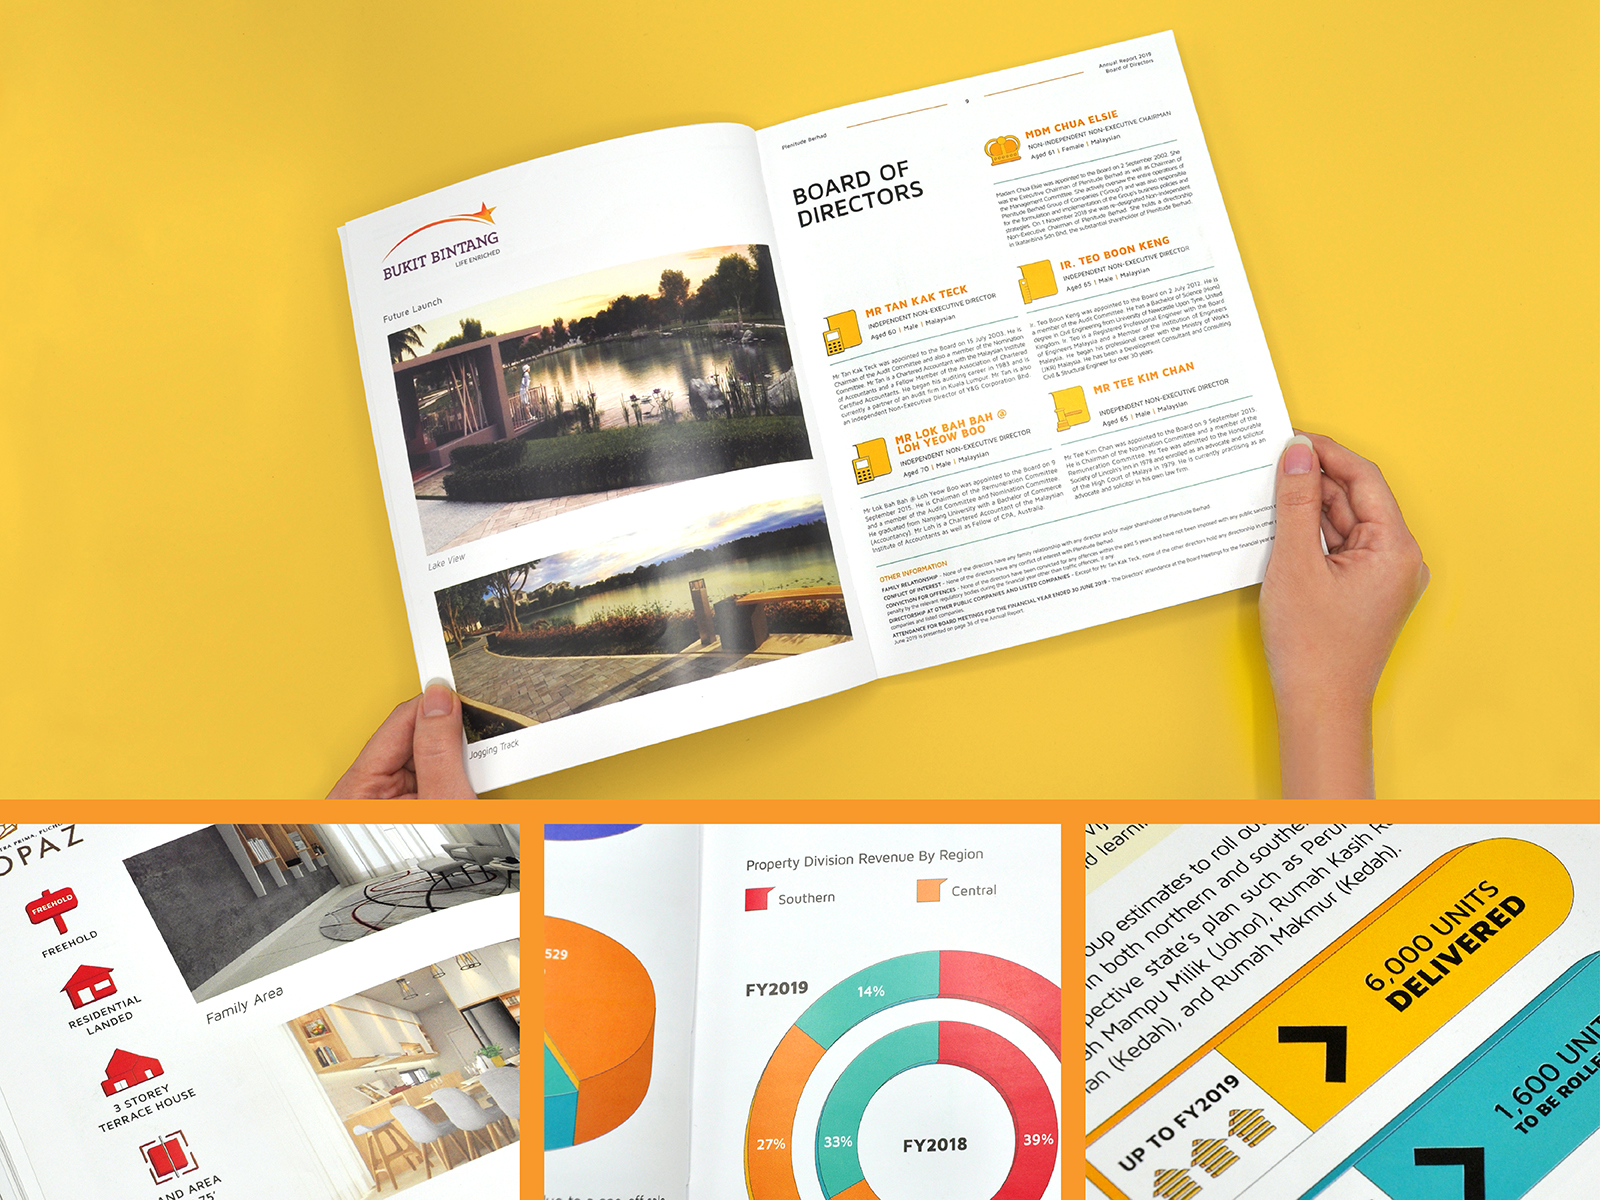 Plenitude annual report 2019 inner page layout design with graph and icon design and a hand holding the annual report